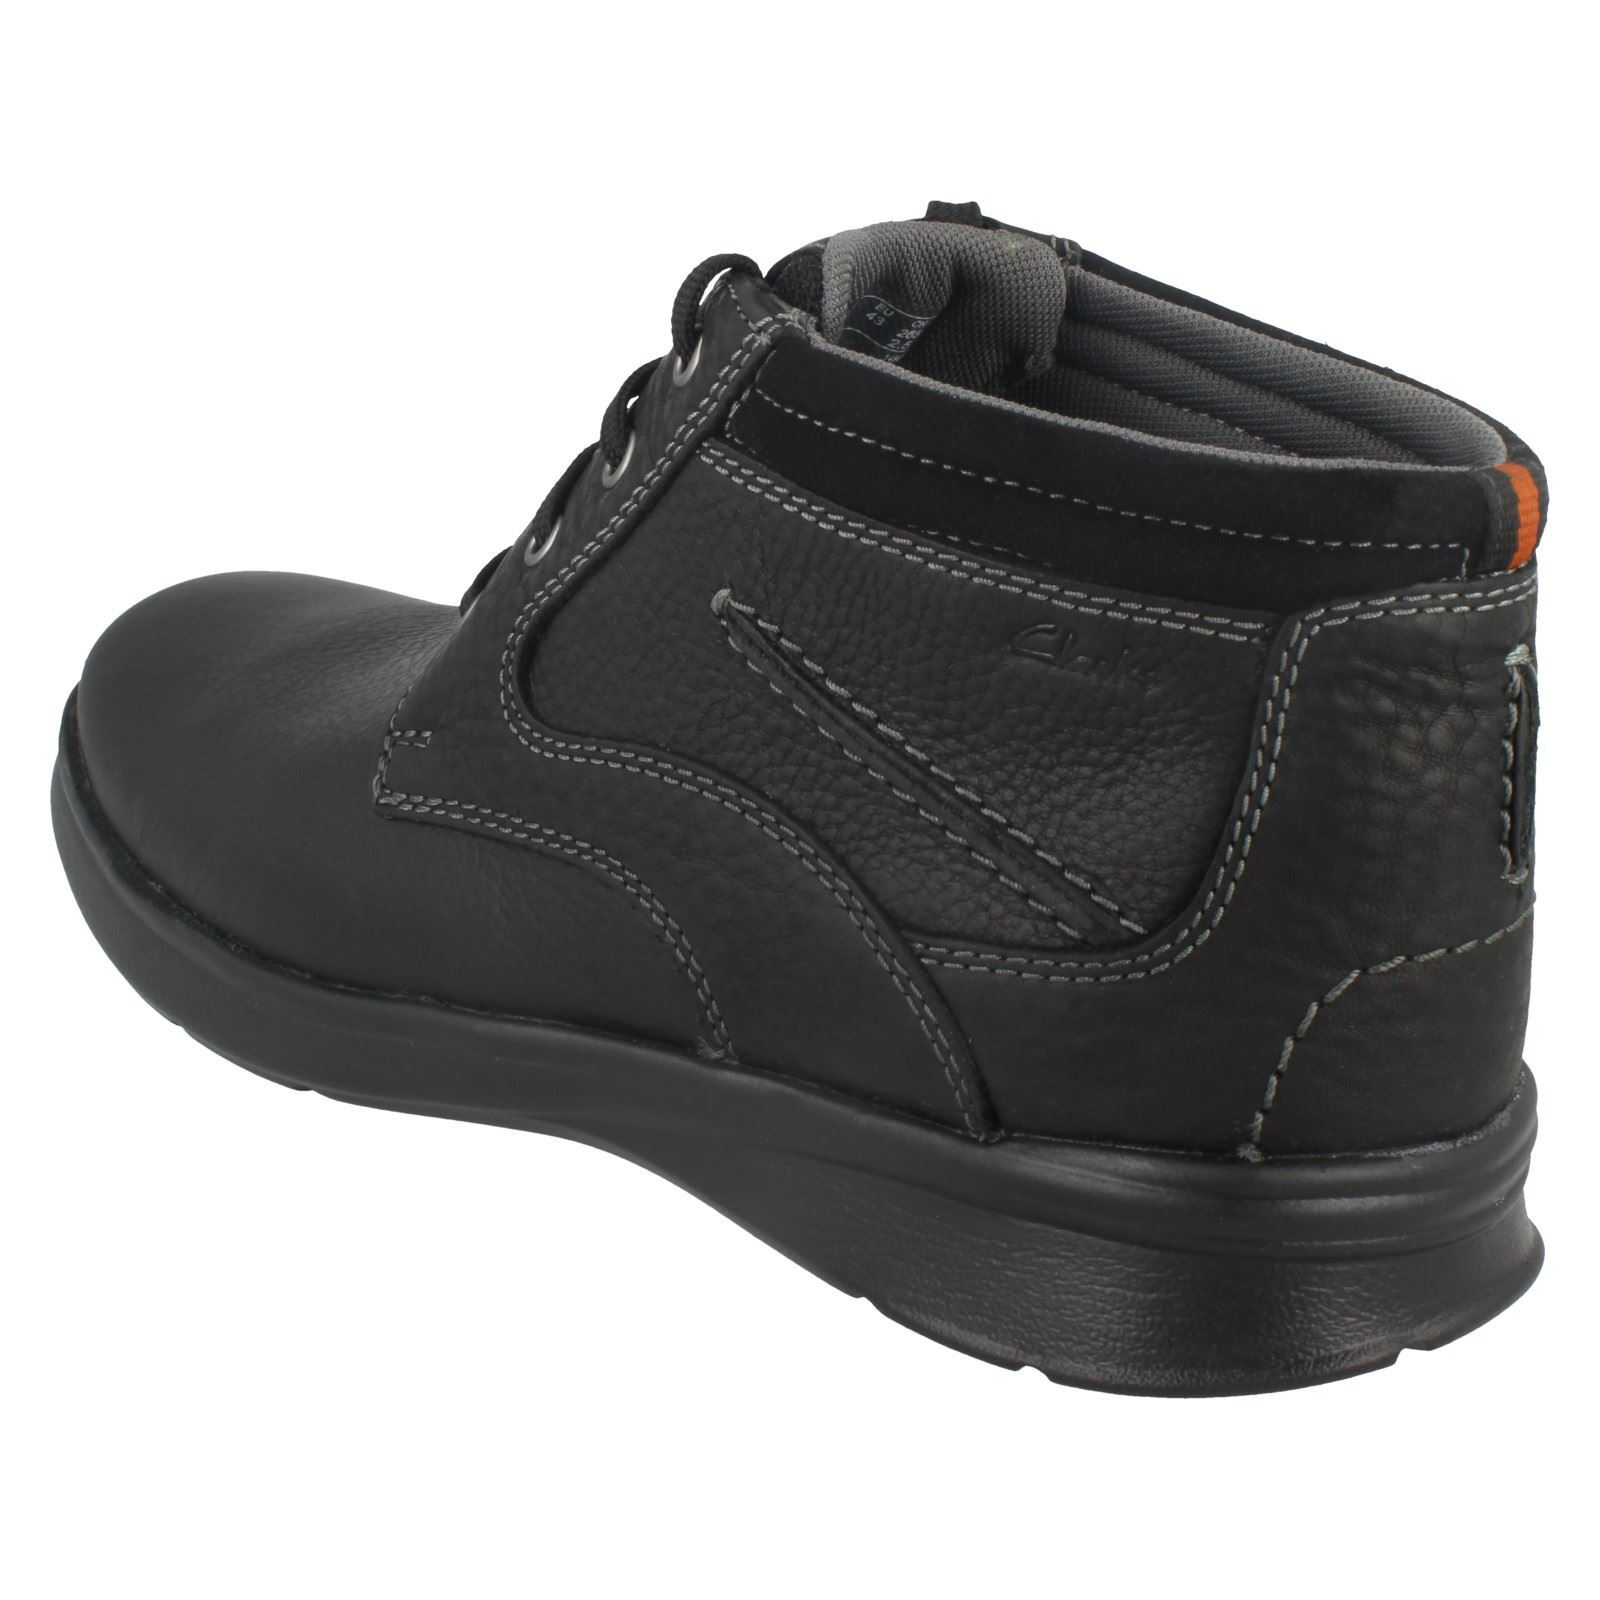 Mens-Clarks-Cotrell-Rise-Casual-Lace-Up-Ankle-Boots thumbnail 4